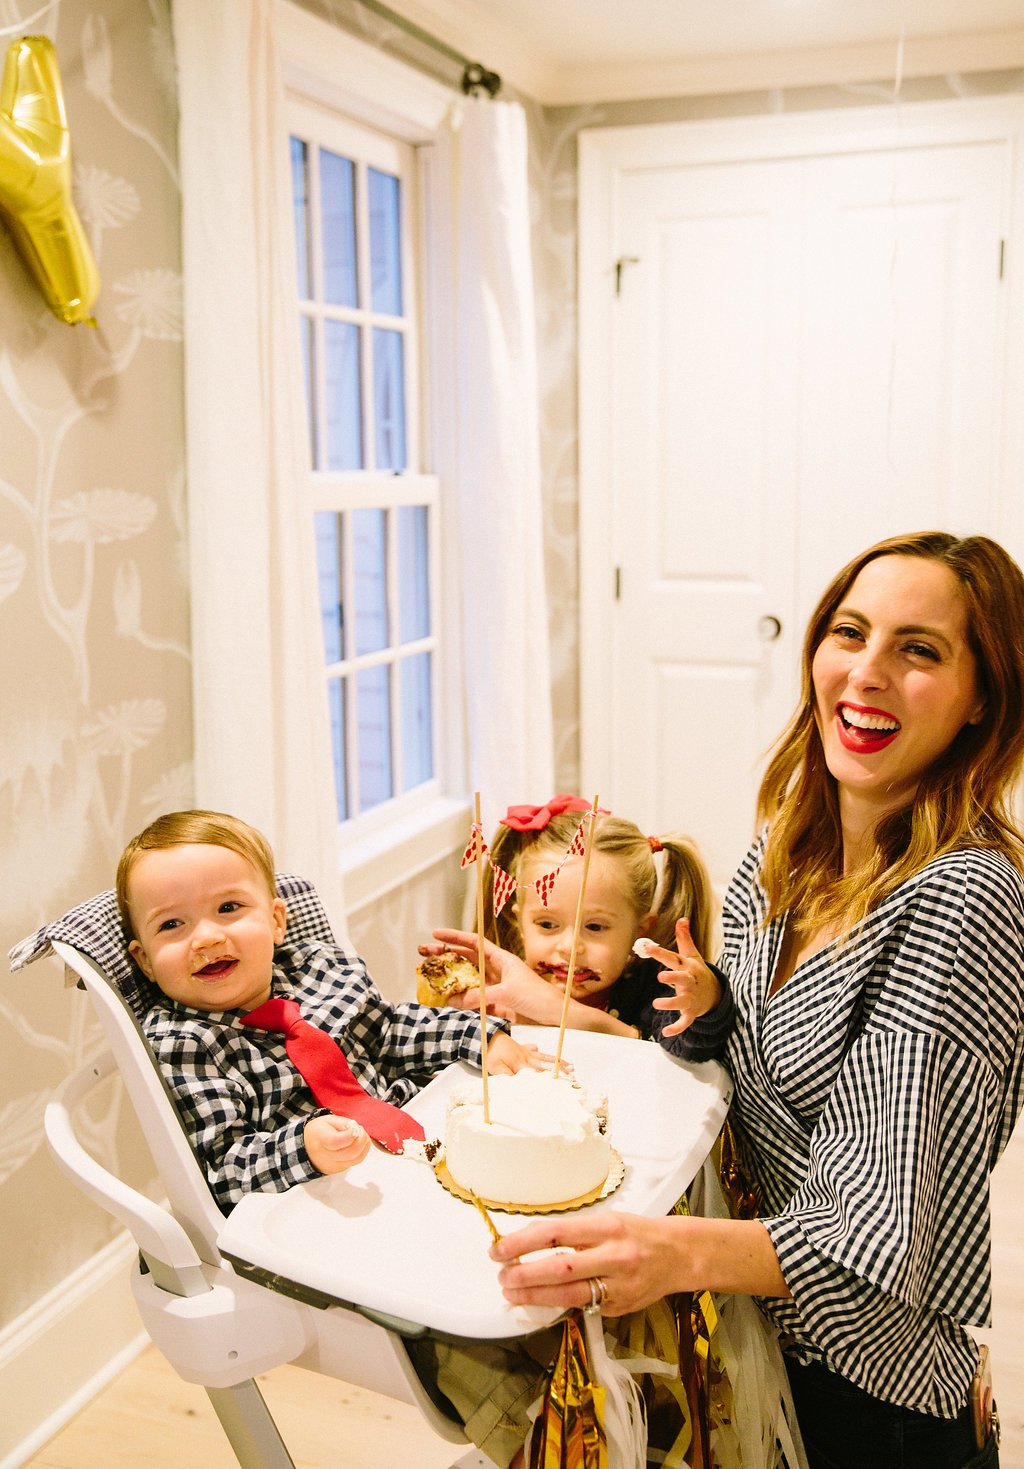 Major Martino laughs as he tries his first bites of cake on his first birthday, surrounded by sister Marlowe and Eva Martino